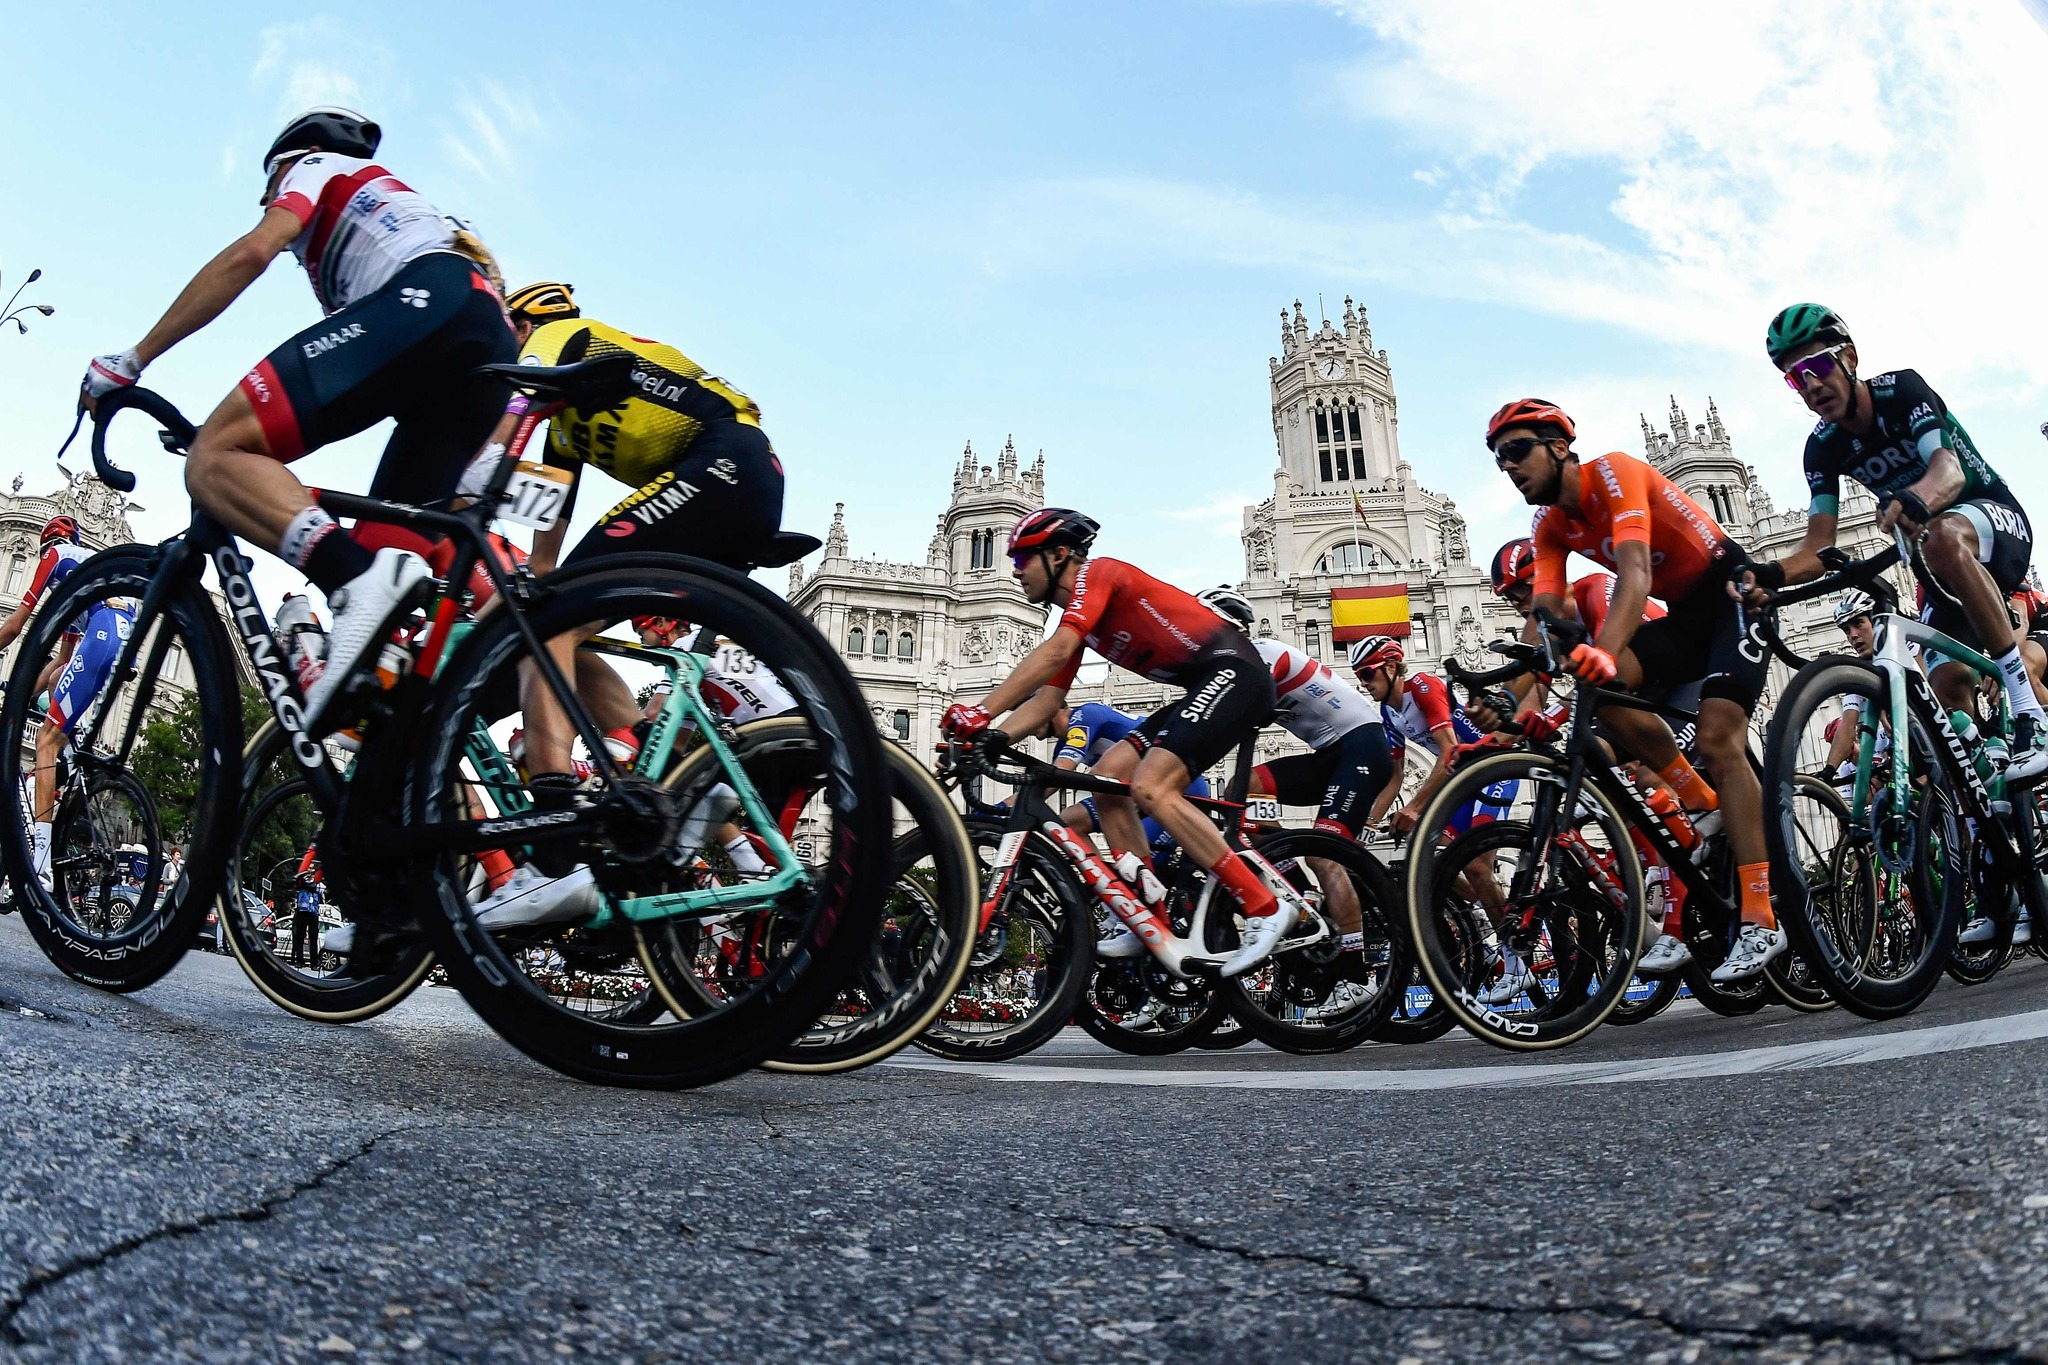 The pack rides past the Bank of Spain during the 21th and last stage of the 2019 La <HIT>Vuelta</HIT> cycling Tour of Spain, a 106,6 km race from Fuenlabrada to Madrid on September 15, 2019. (Photo by OSCAR DEL POZO / AFP)